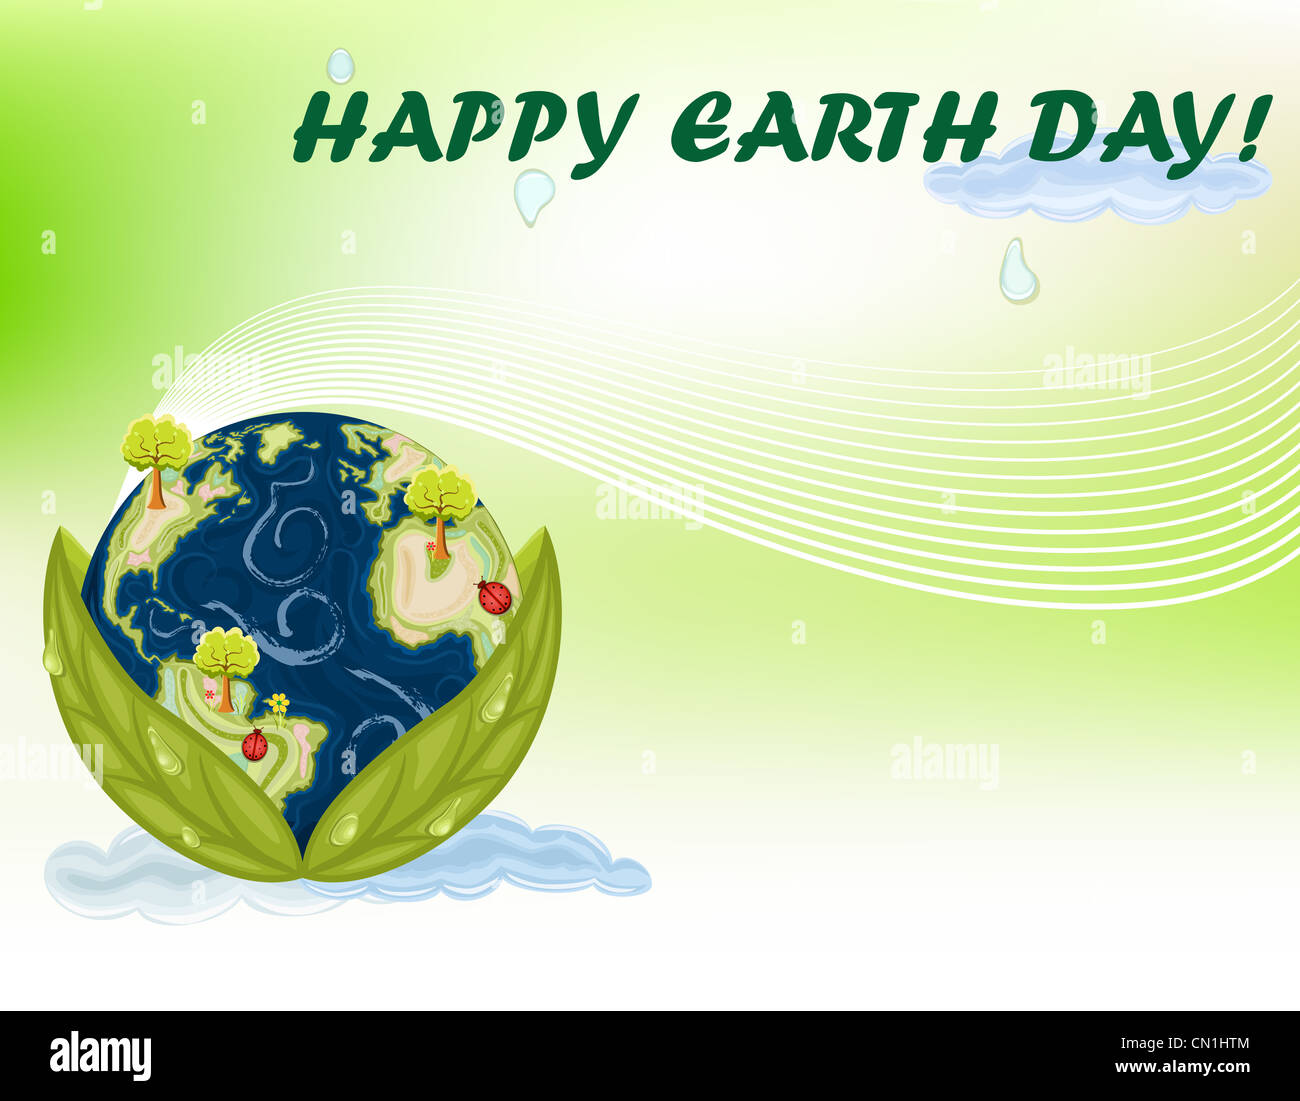 Earth Day - 22 April international celebration. - Stock Image